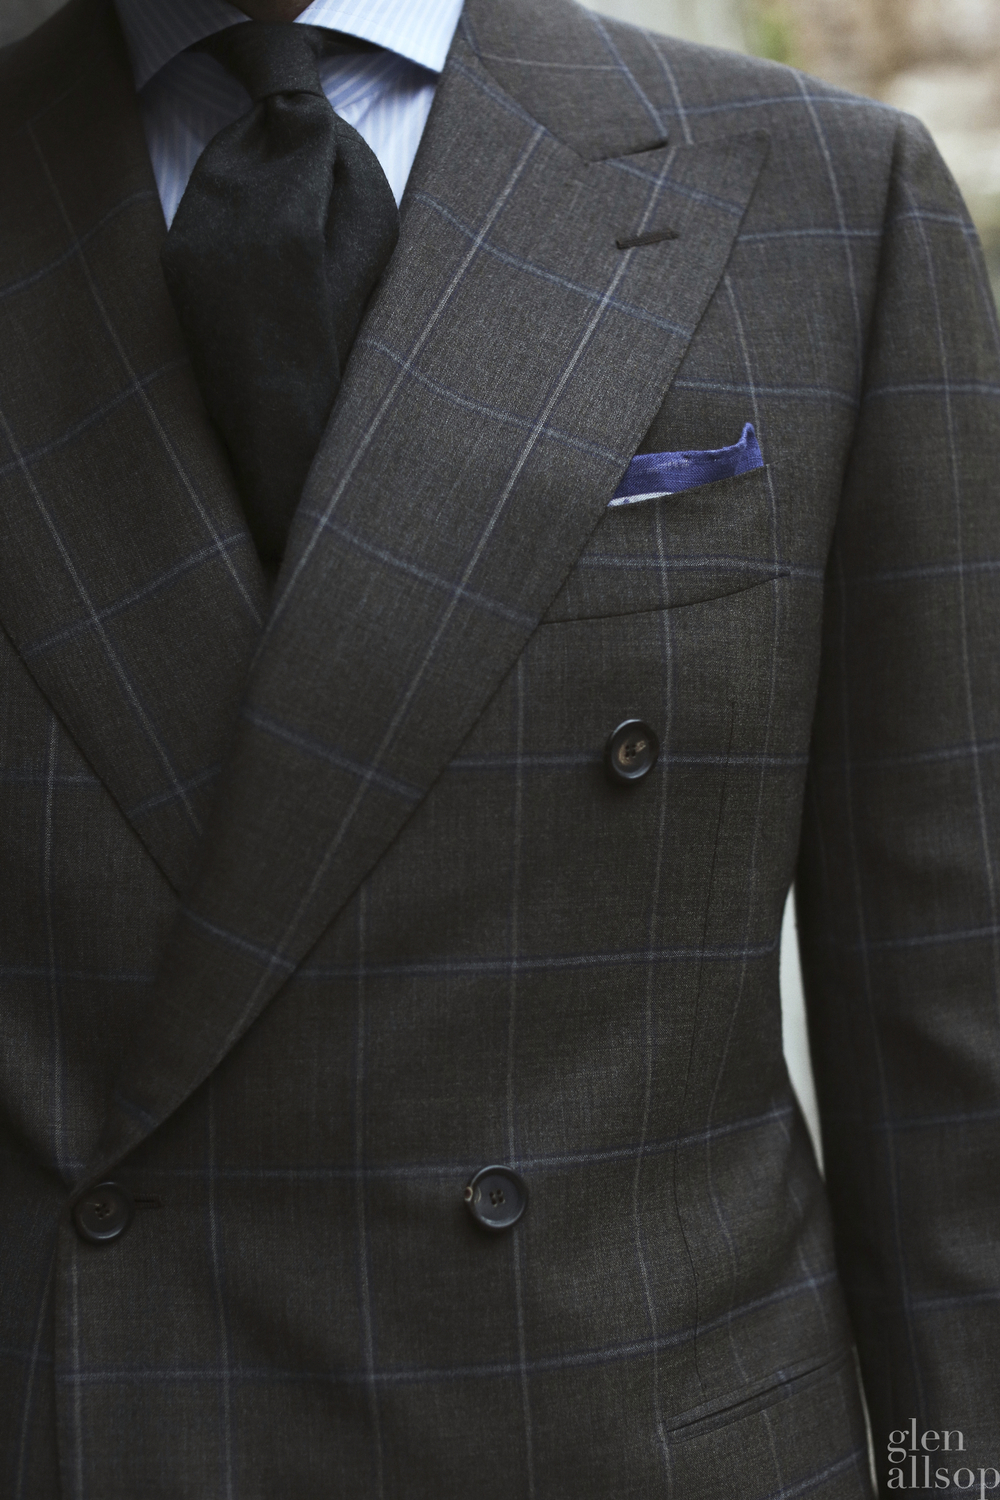 attolini-window pane-suit-menswear-glen allsop